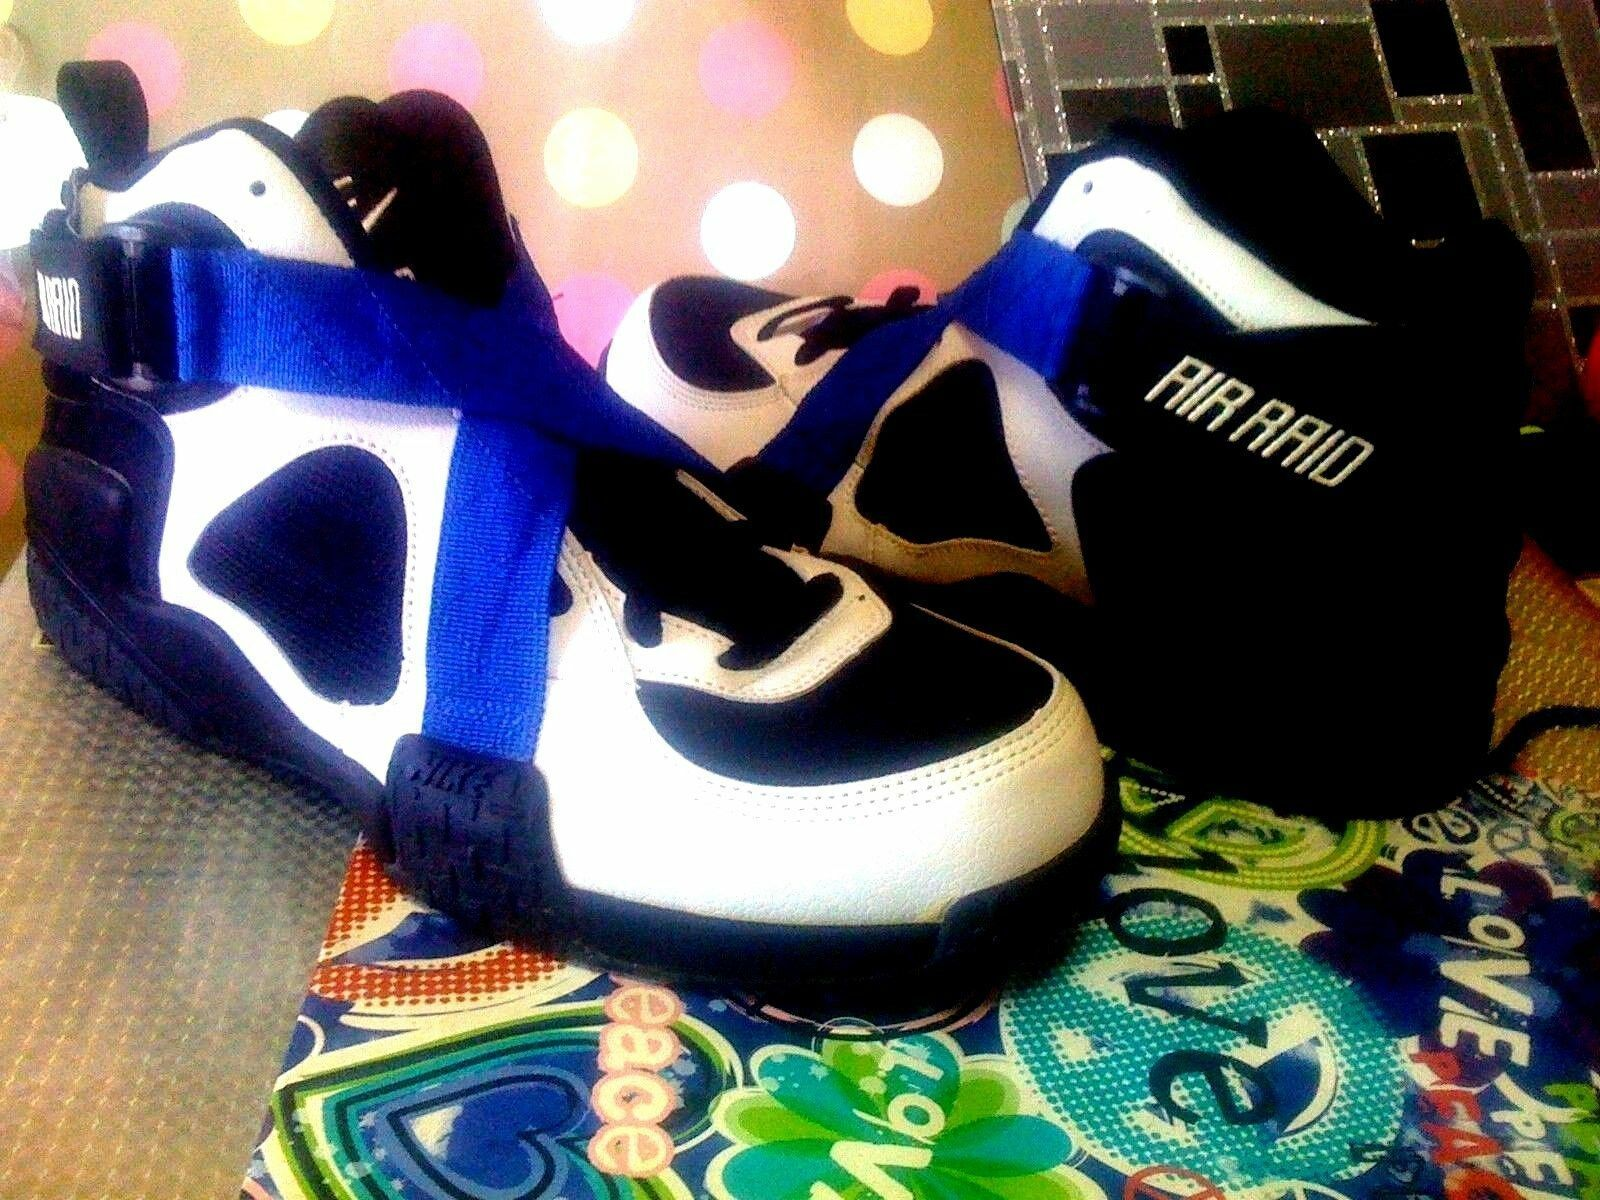 e976a3eb01df Nike Air Raid 13 11.5 OG ROYAL ROYAL ROYAL Max 1 90 95 97 duke 270 ...